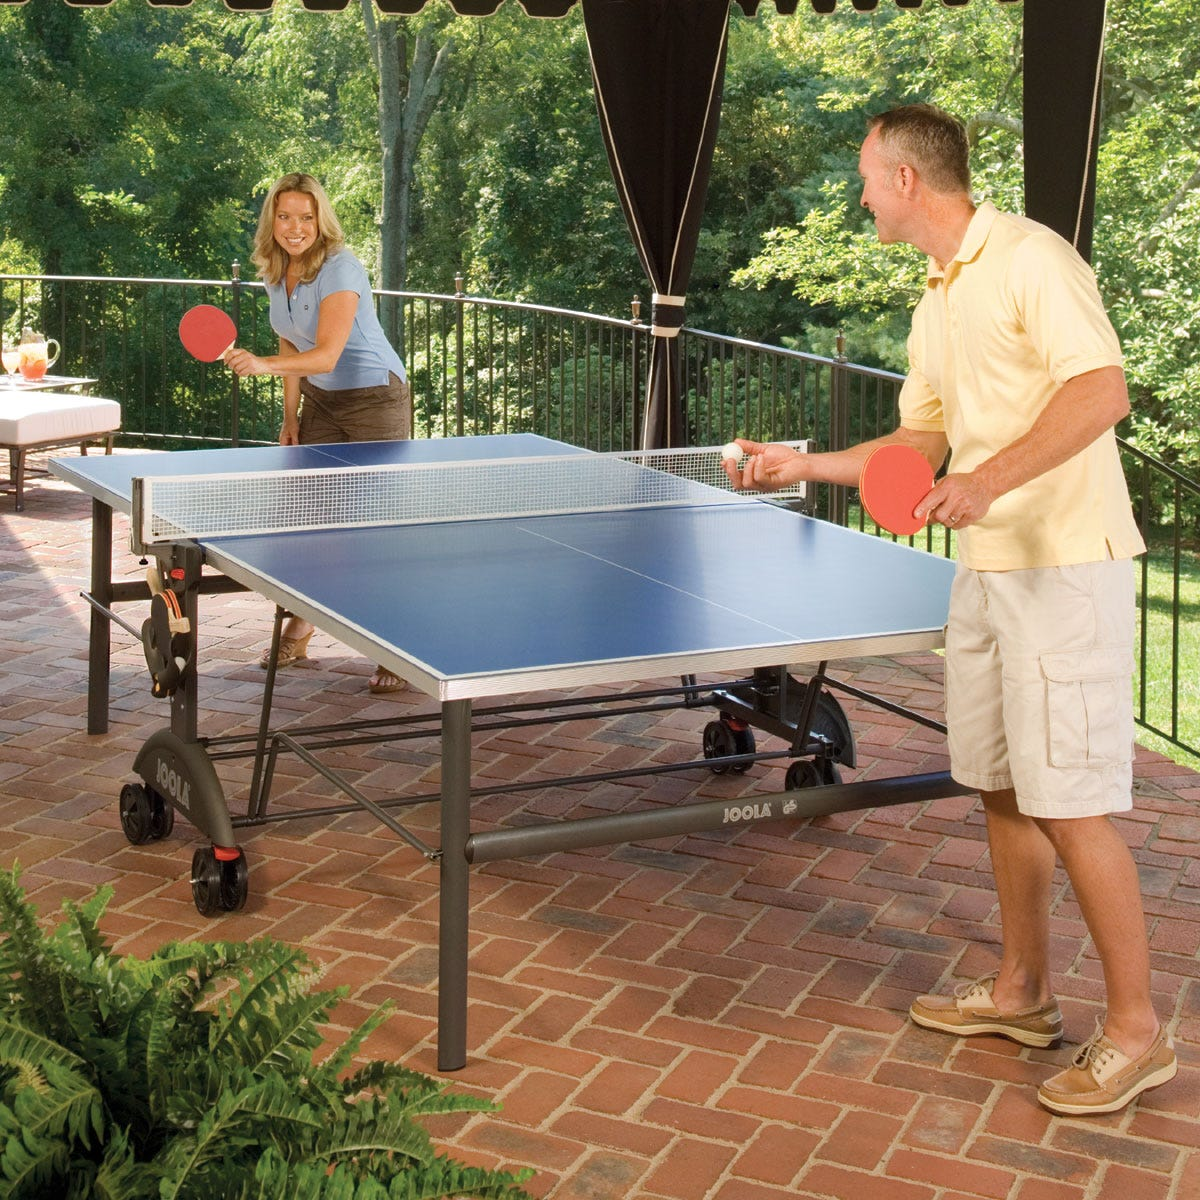 Indoor Outdoor Tennis Table From Sportys Preferred Living